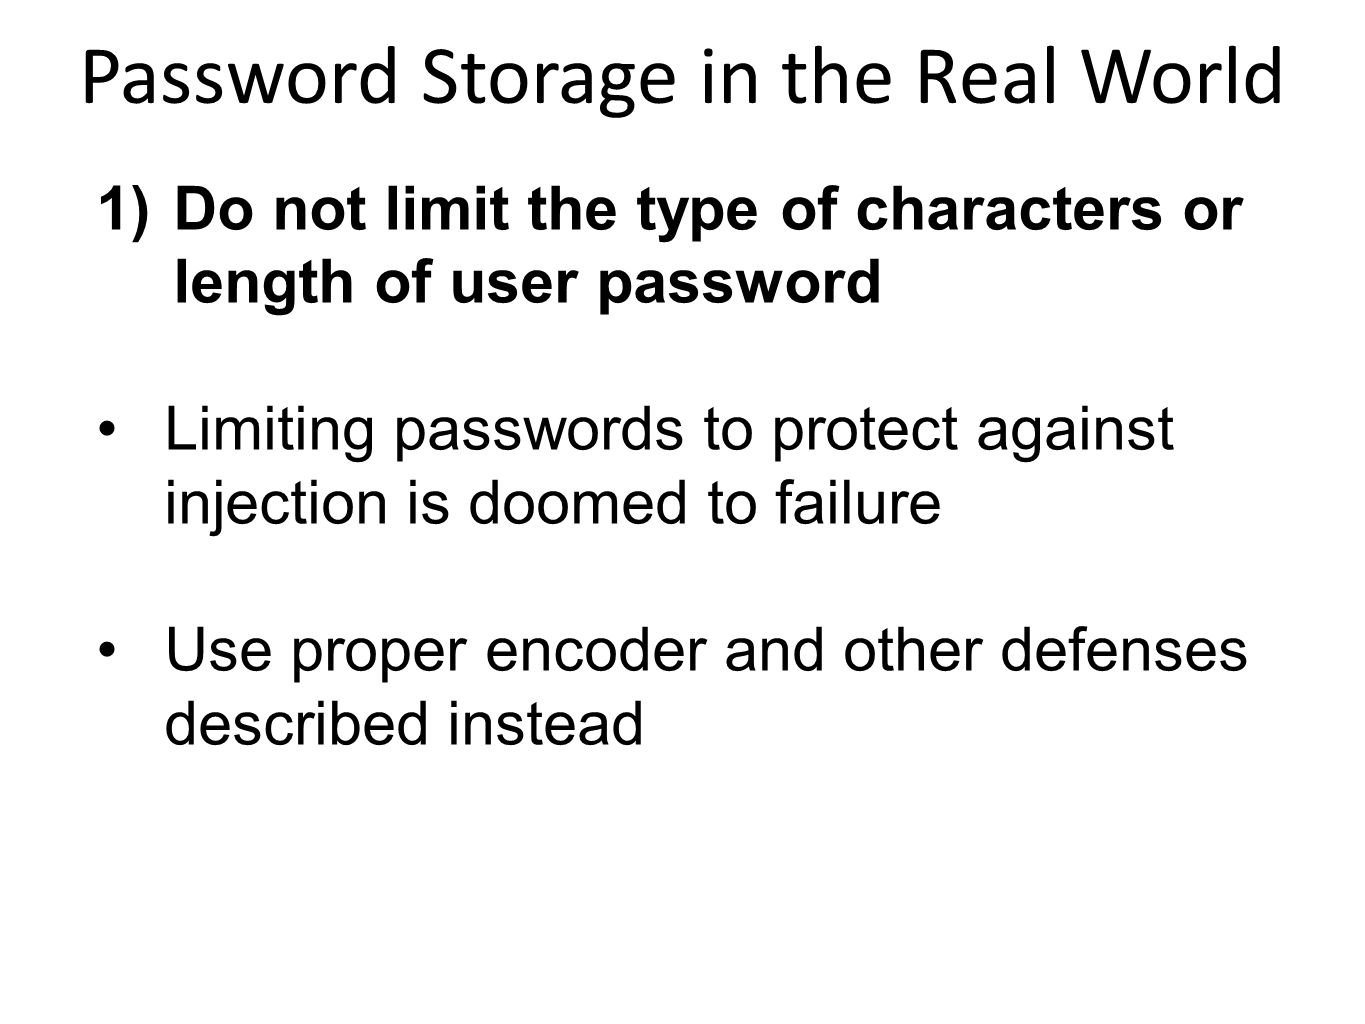 1)Do not limit the type of characters or length of user password Limiting passwords to protect against injection is doomed to failure Use proper encod